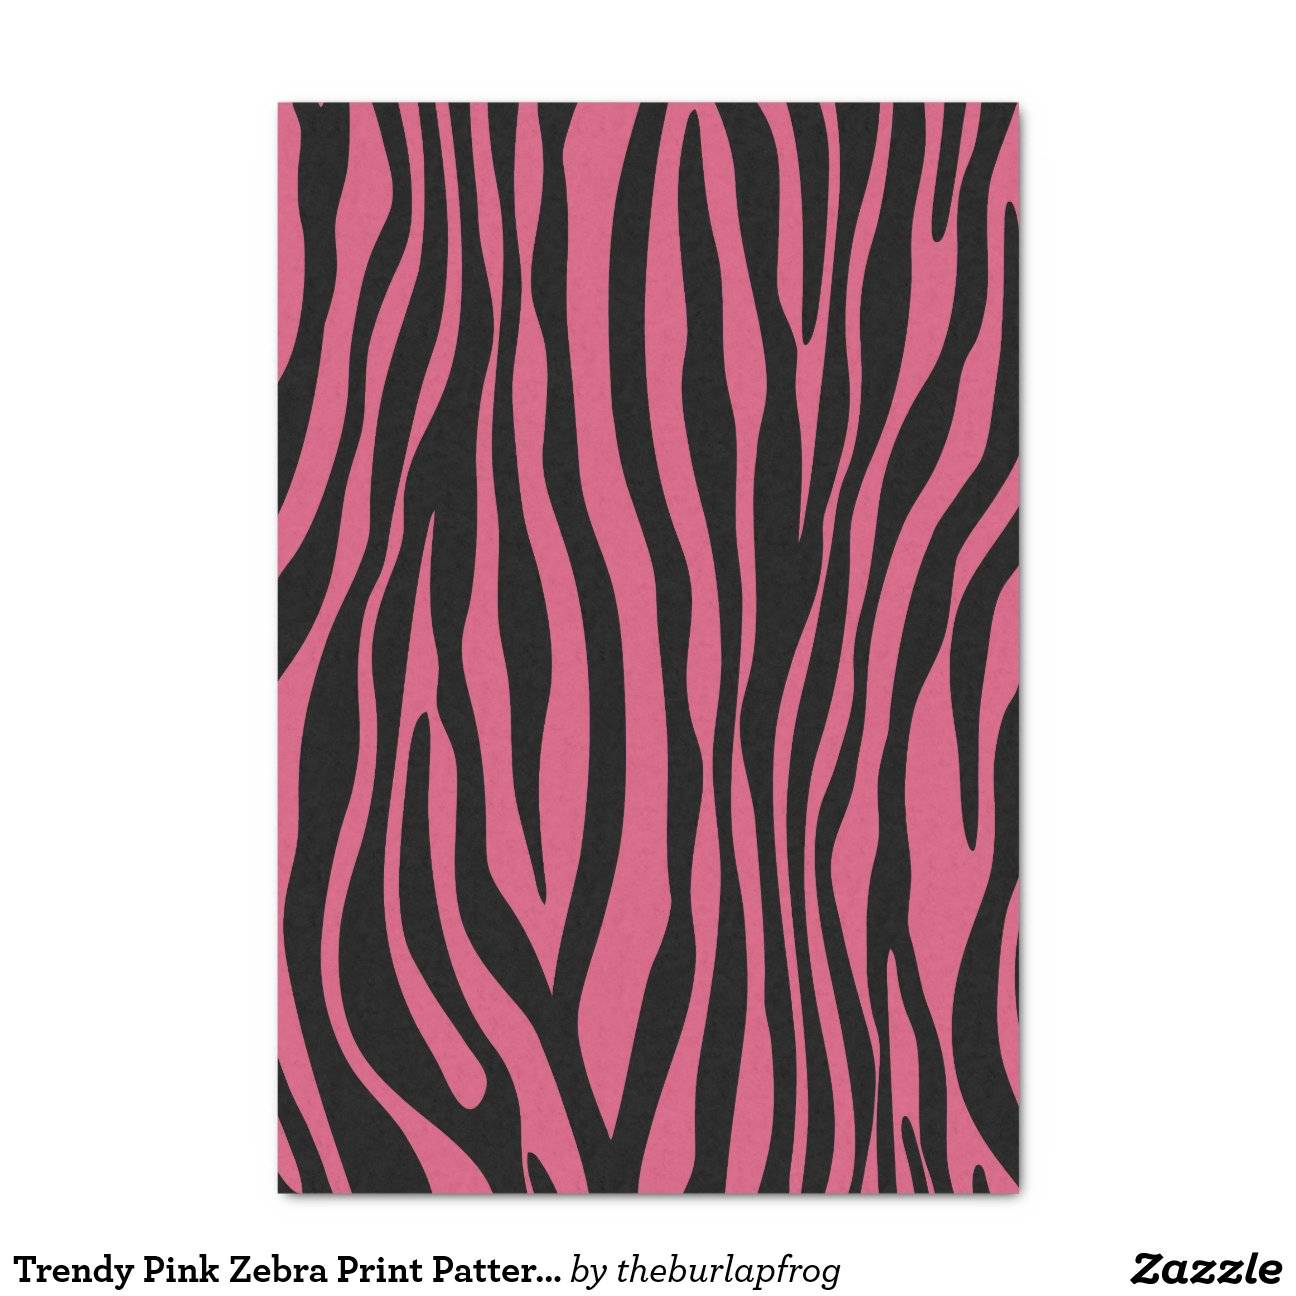 zebra print tissue paper Go wild with your gifts our zebra printed tissue paper features that classic black  and white striped pattern this tissue paper is the perfect accent for gift bags,.